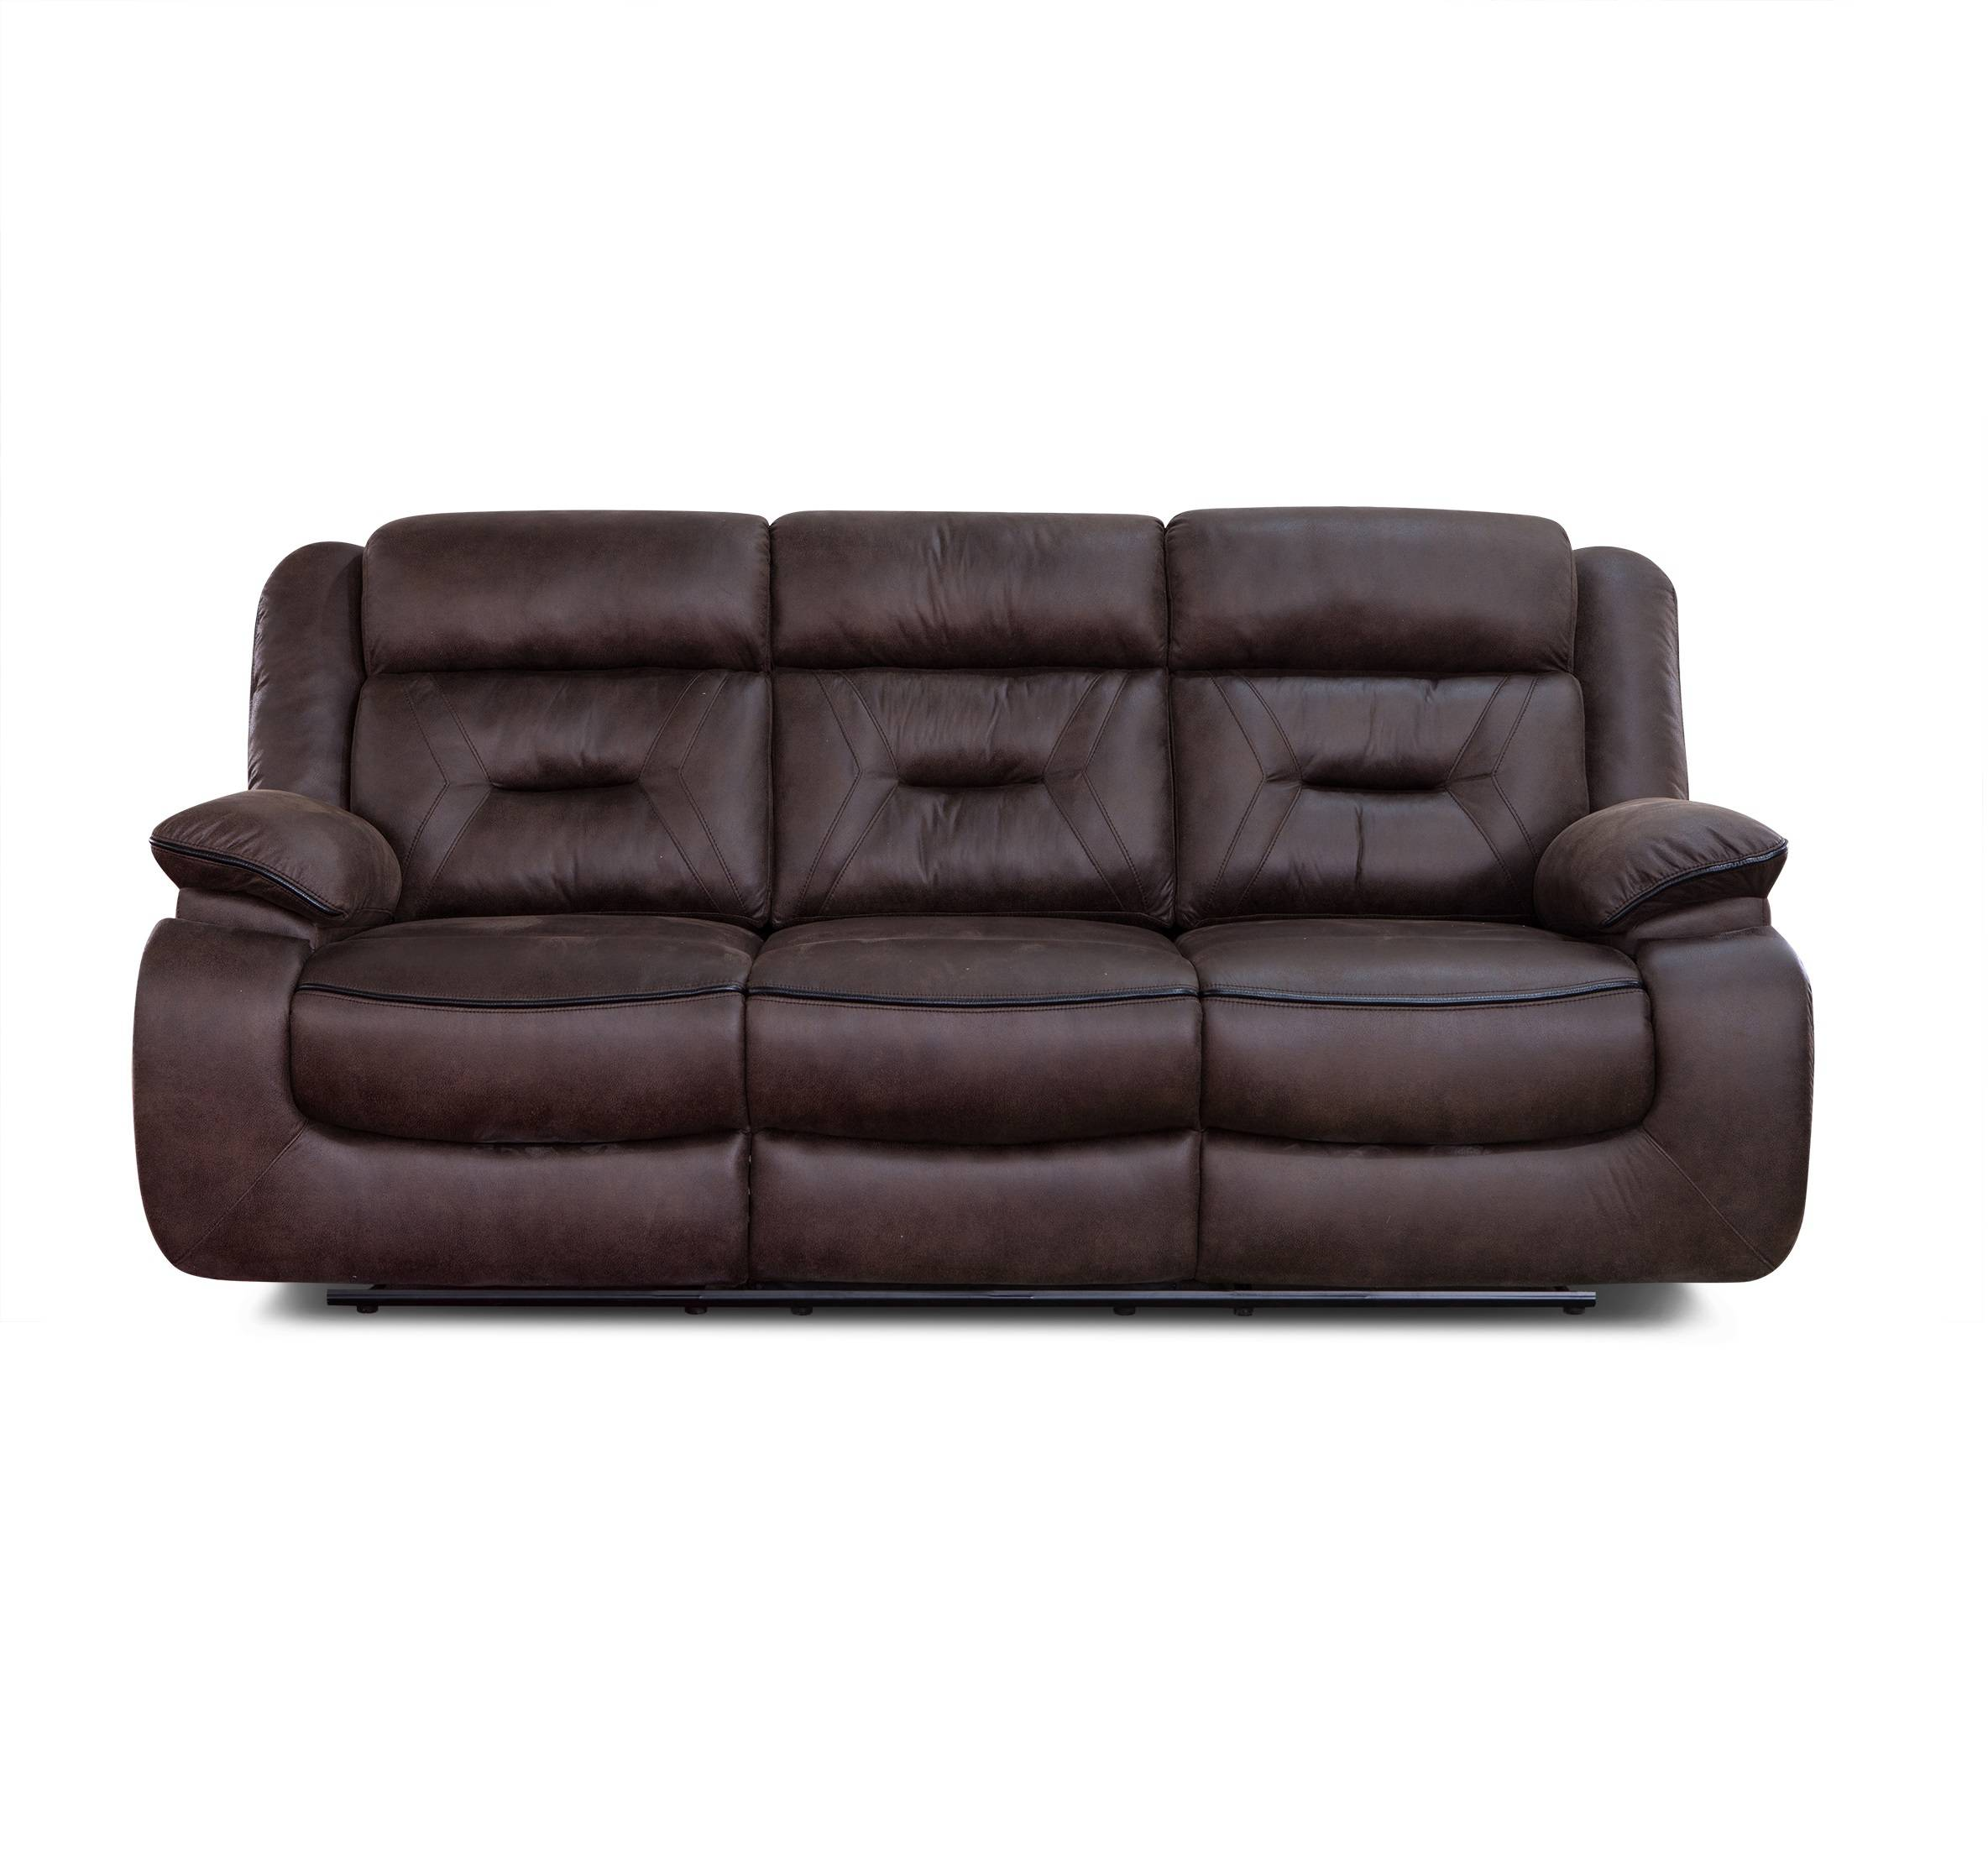 Home cinema leather recliner relax 3 seater sofa electric